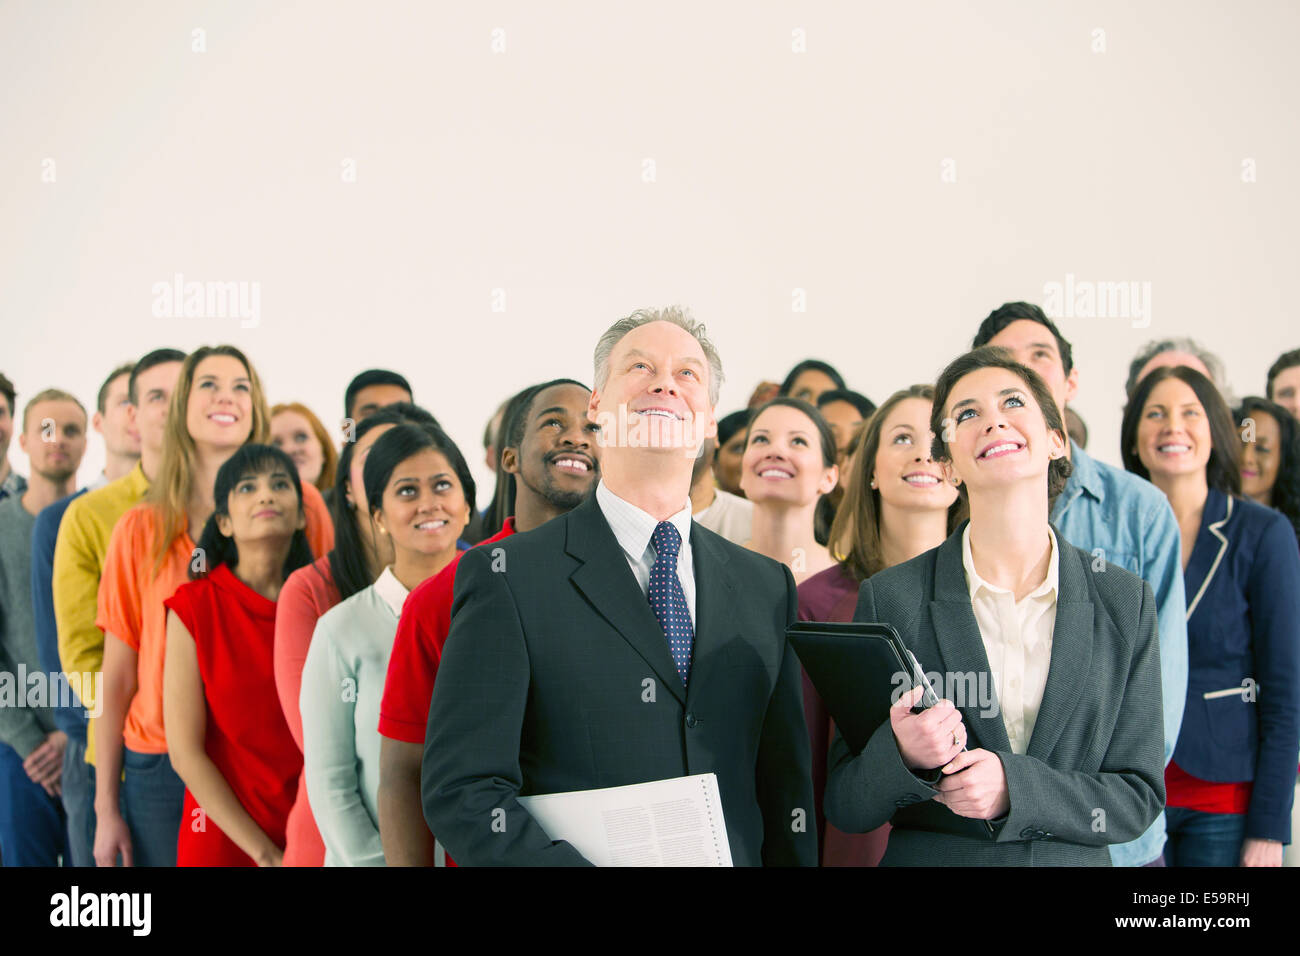 Crowd of business people looking up - Stock Image